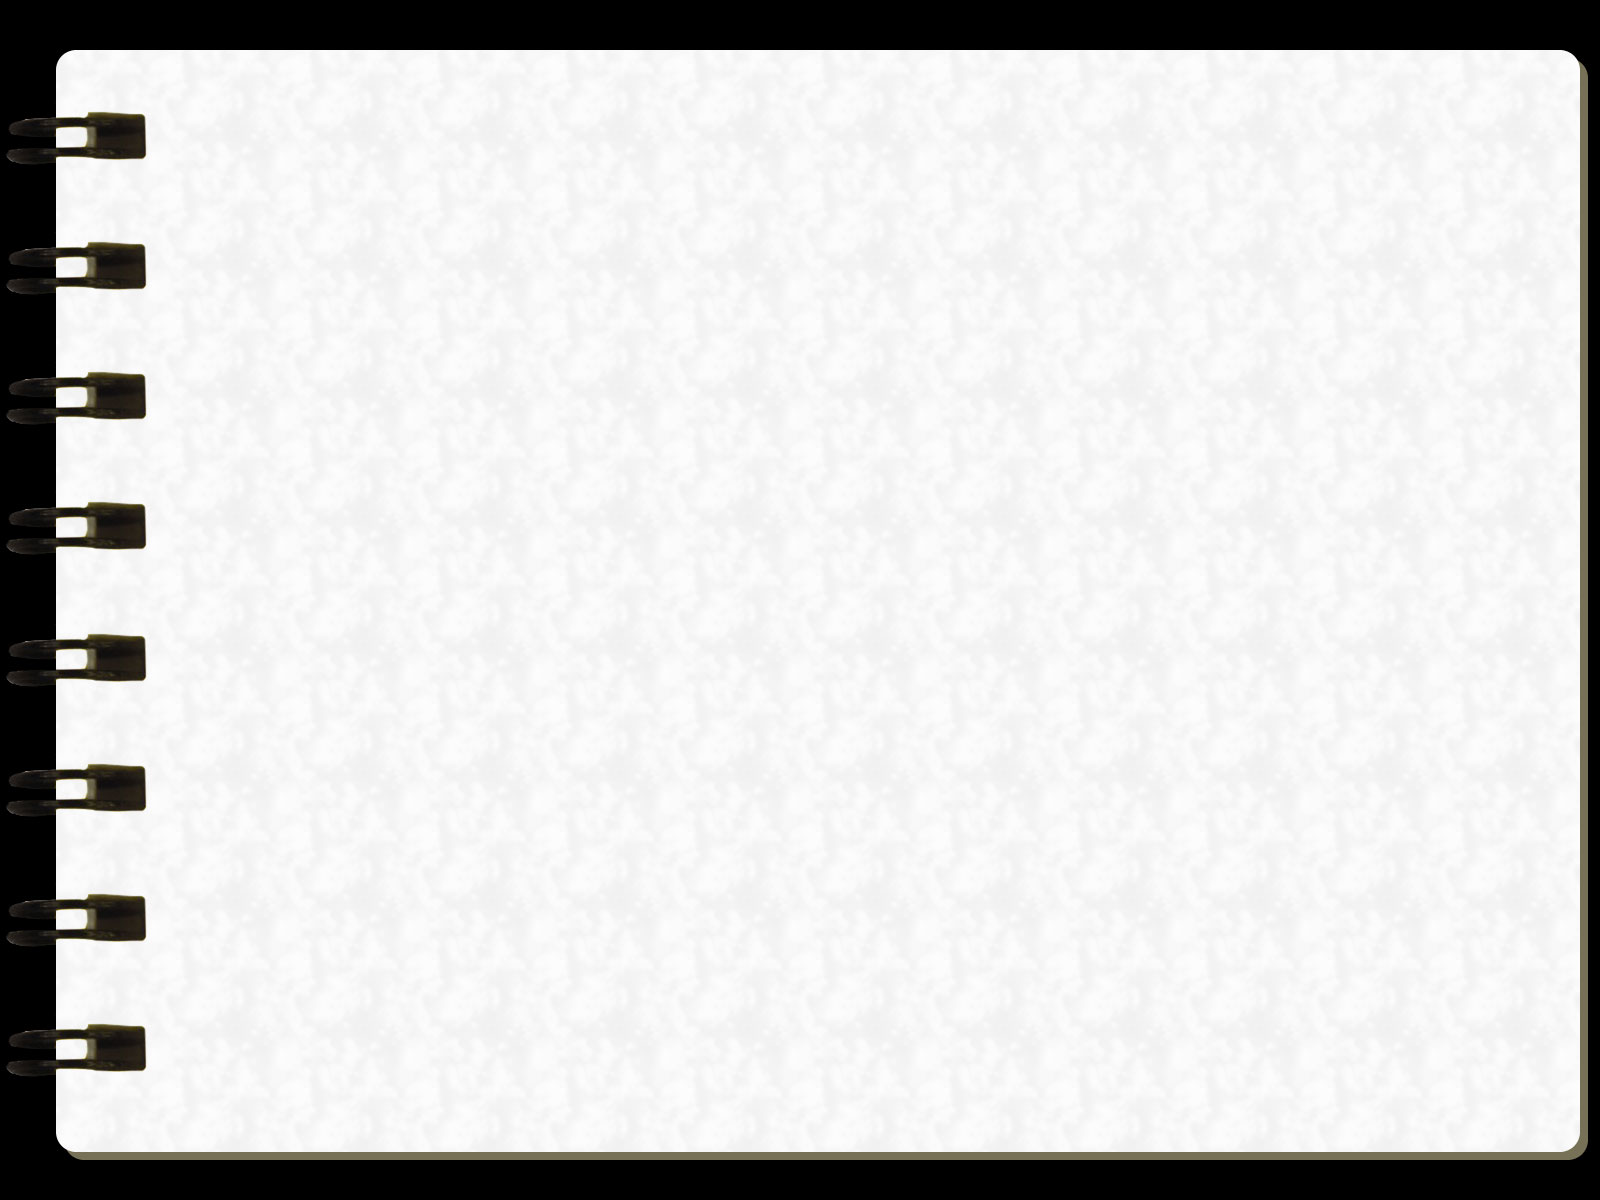 Background Powerpoint